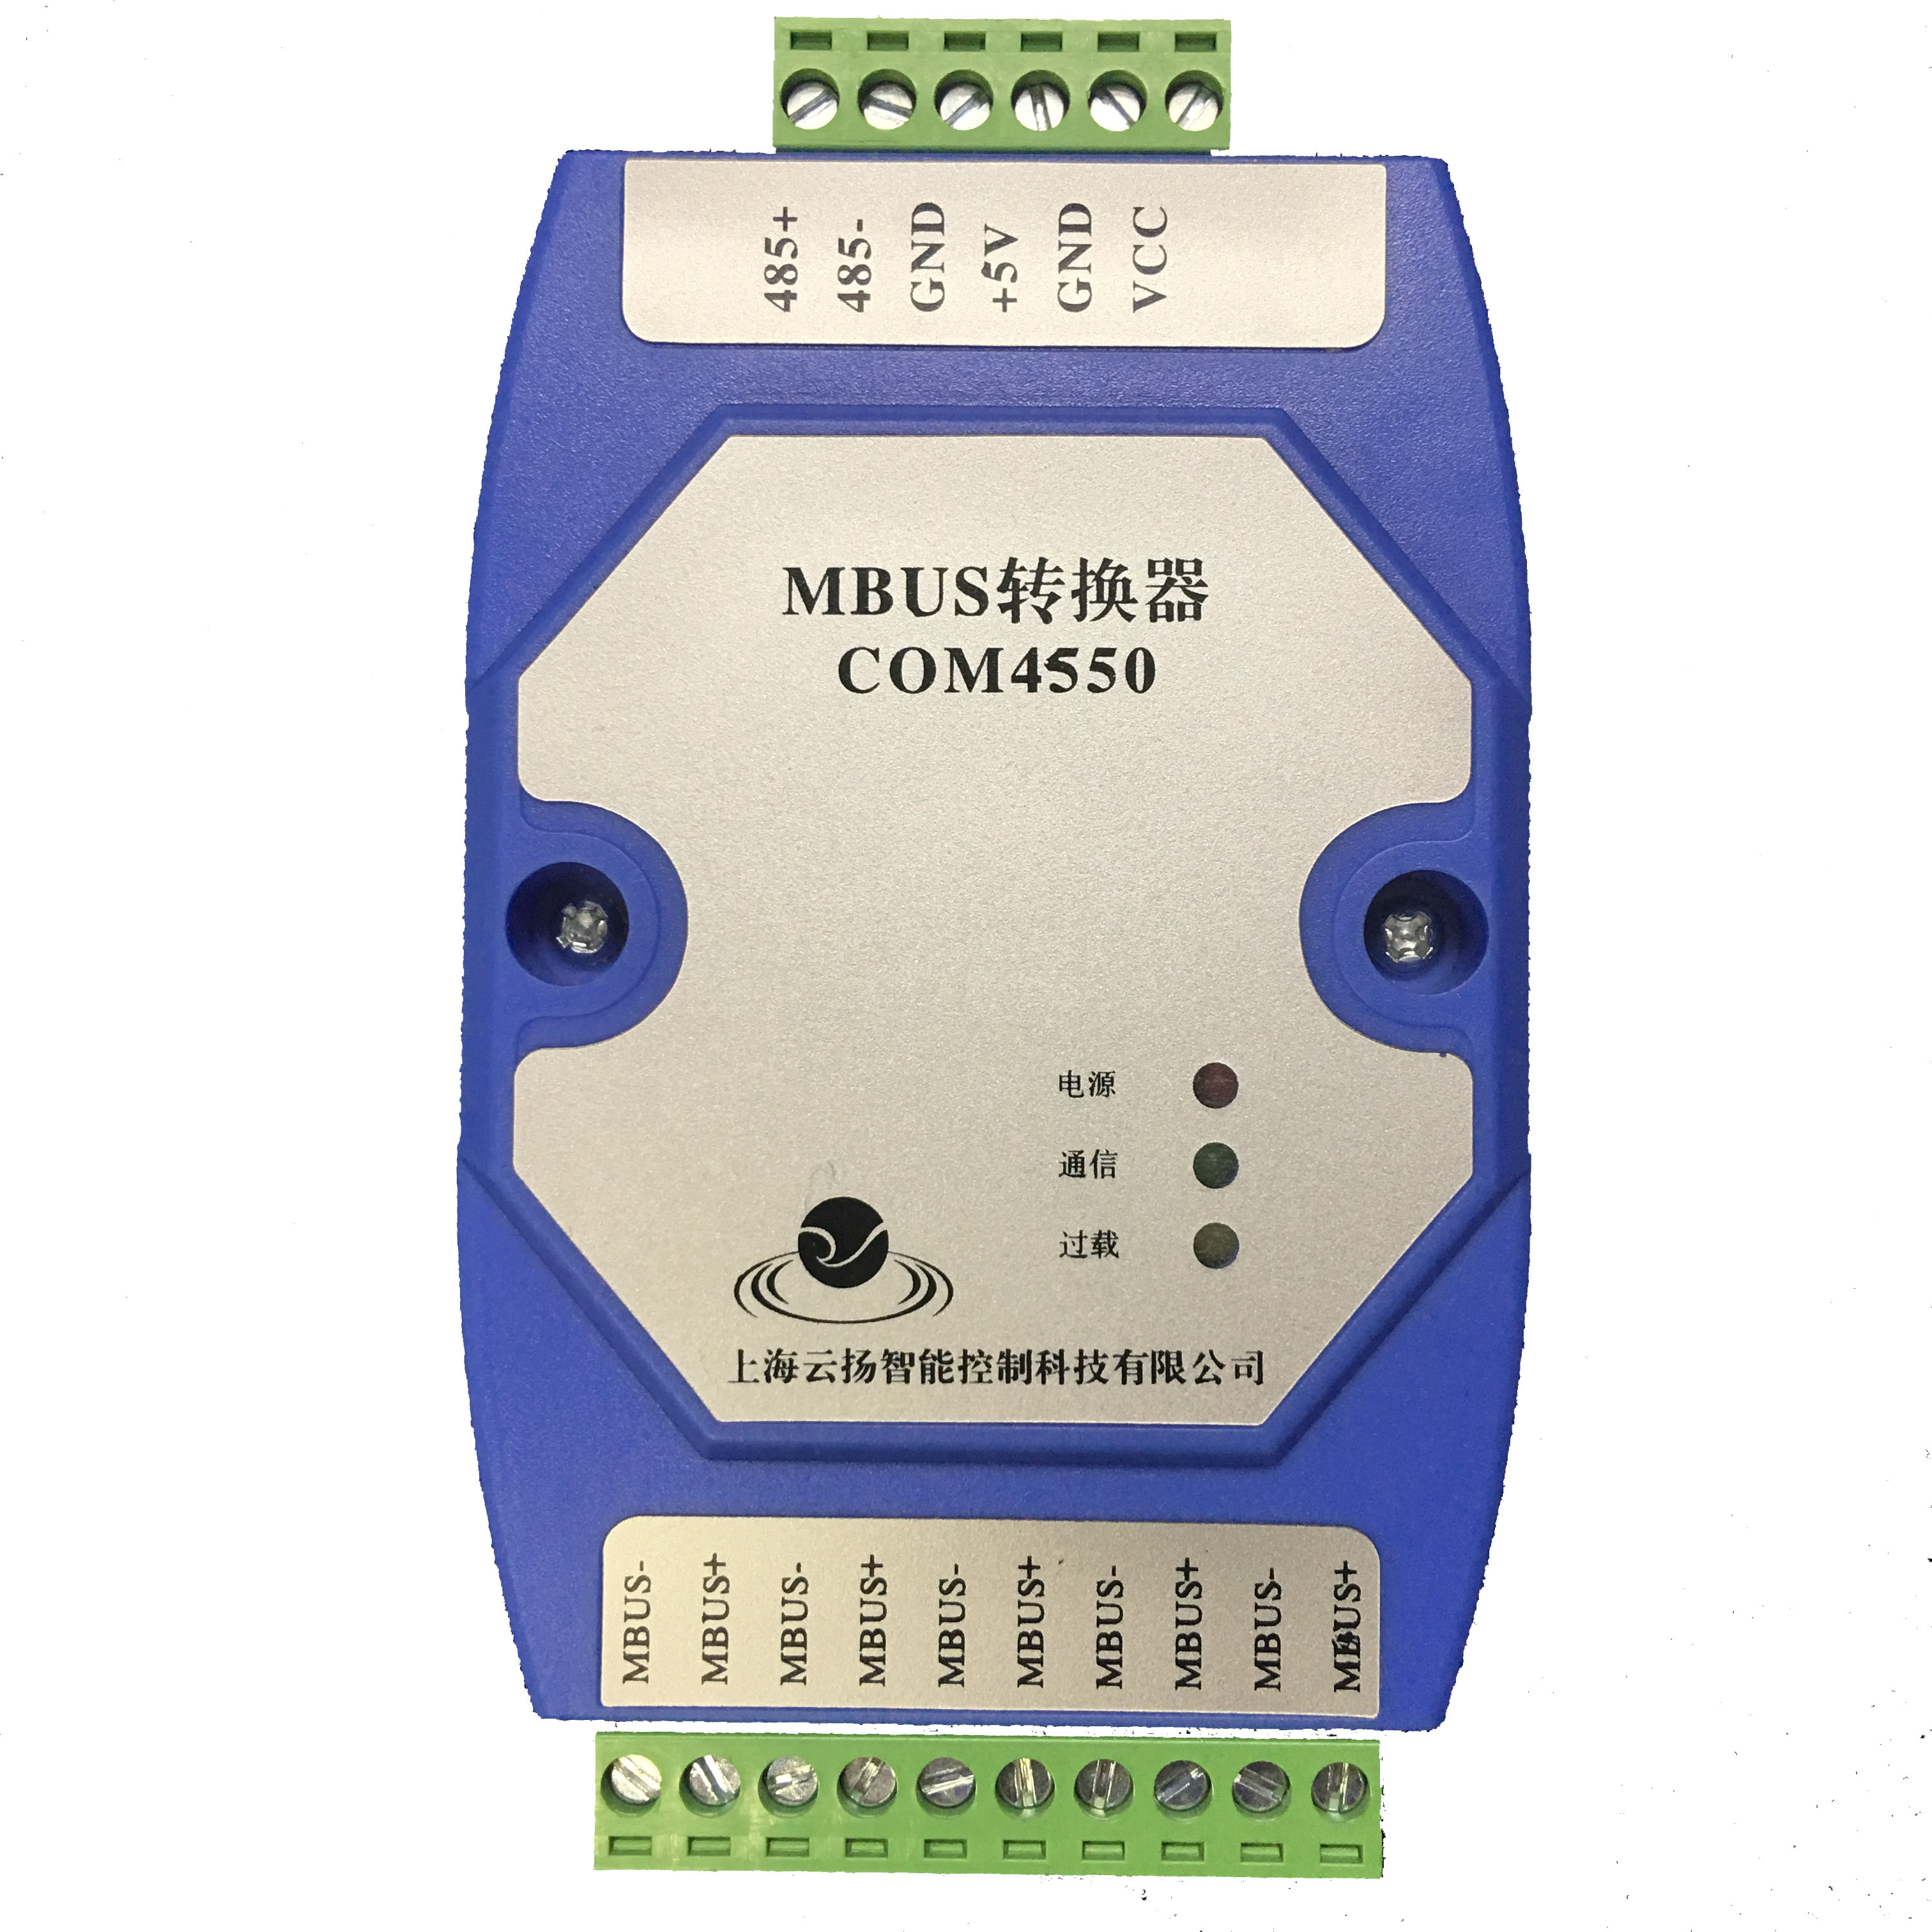 MBUS/M-BUS to RS485, RS232, serial concentrator, meter reading converter module, over 300 slave stations недорого